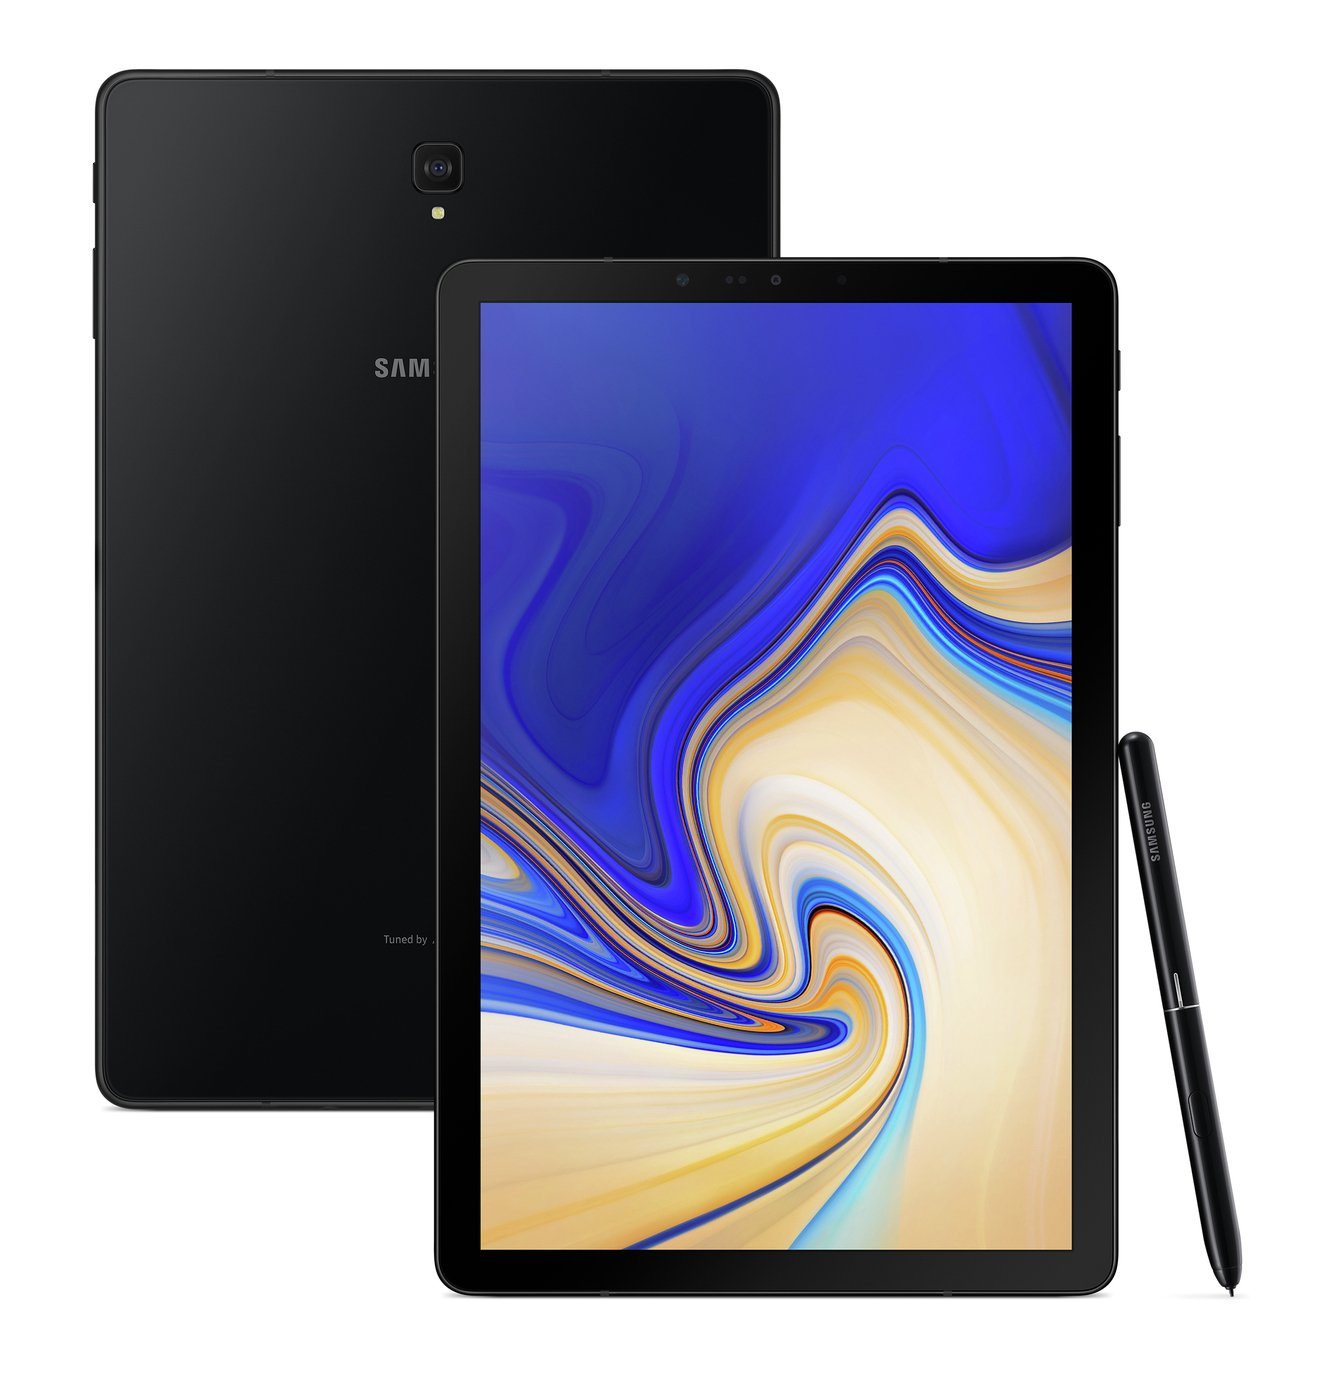 Samsung Tab S4 10.5 Inch 4G LTE Tablet - Black from Samsung